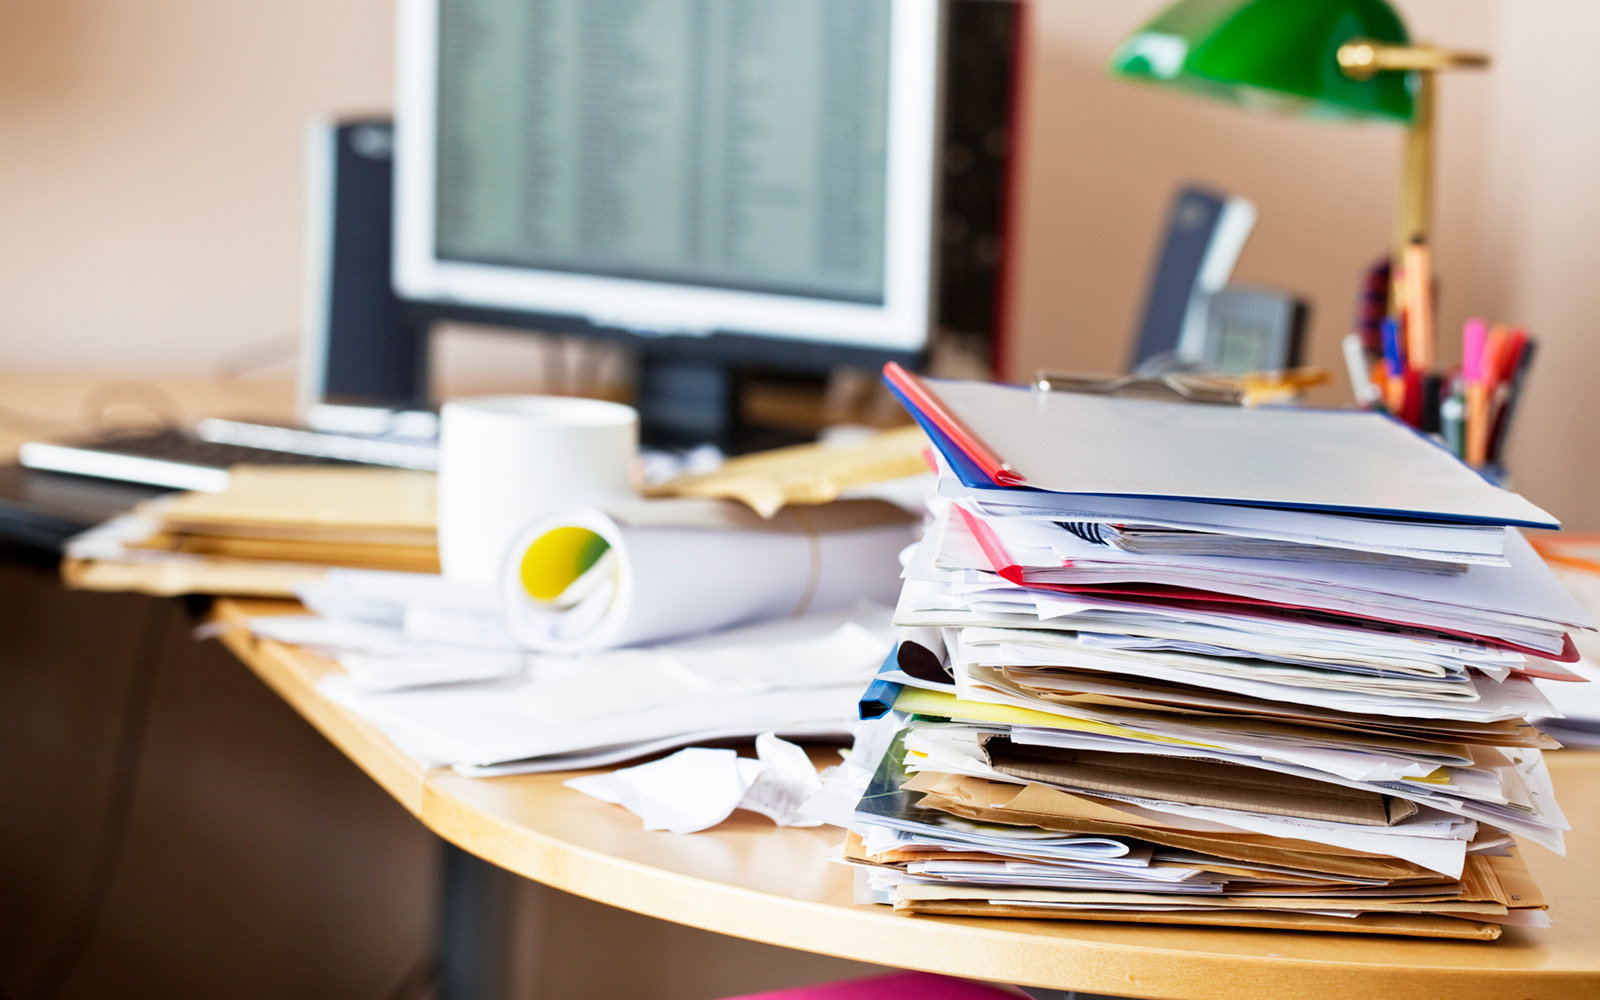 10 Messy Desks of Successful People - Office Pains